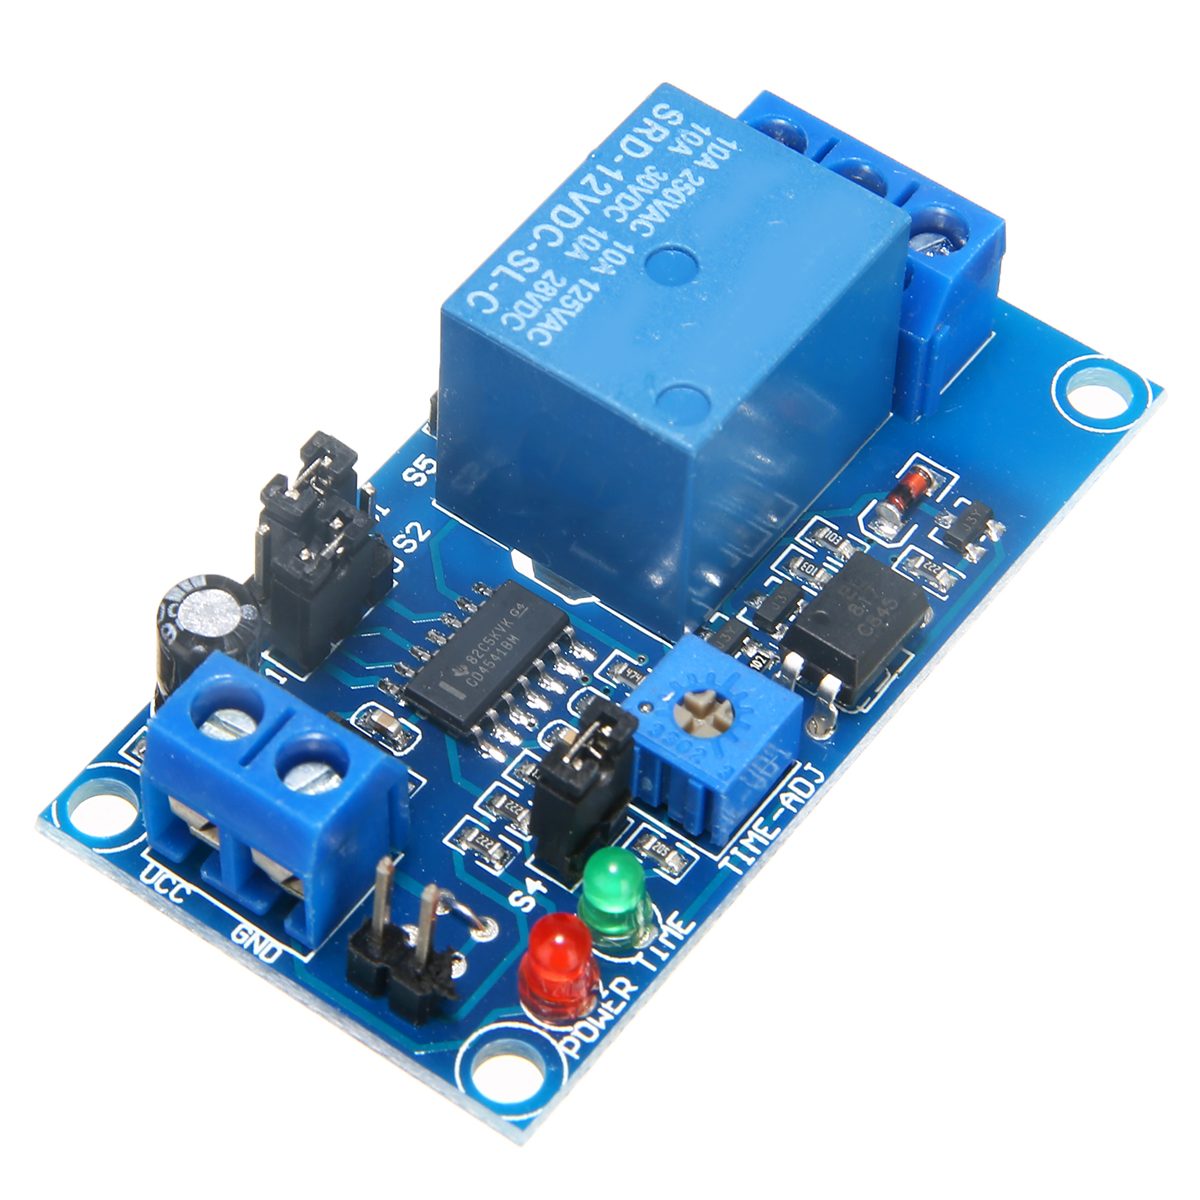 1pc DC 12V Time Delay Relay Module Circuit Timer Timing Board Switch Trigger Adjustable Delay Relay Control Module Delay Switch